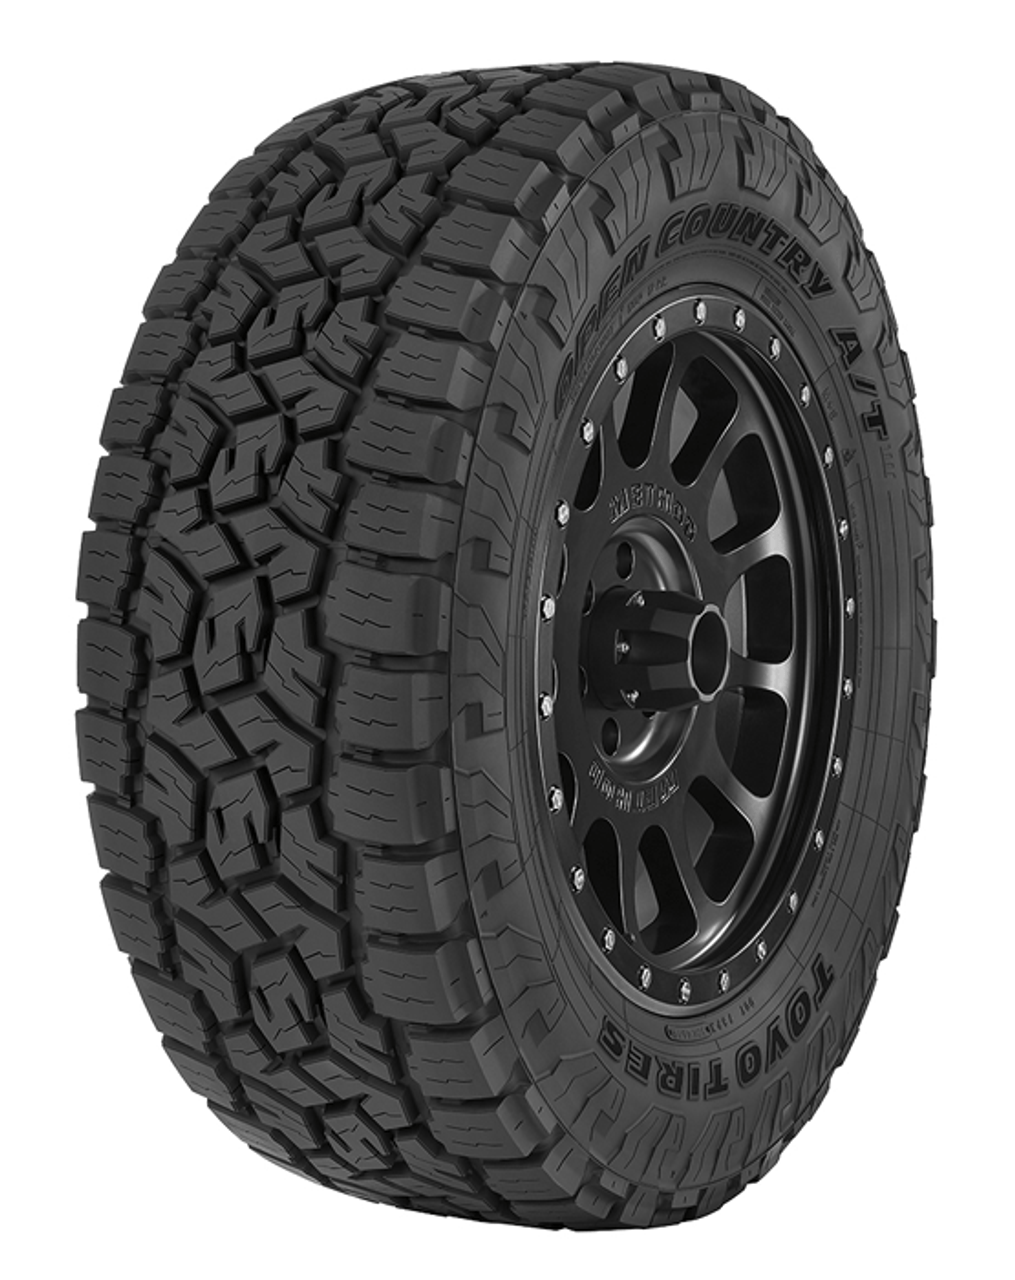 tire 305 toyo 55r20 country open tires atiii series hazard road terrain current bsw ply 122q coverage lt